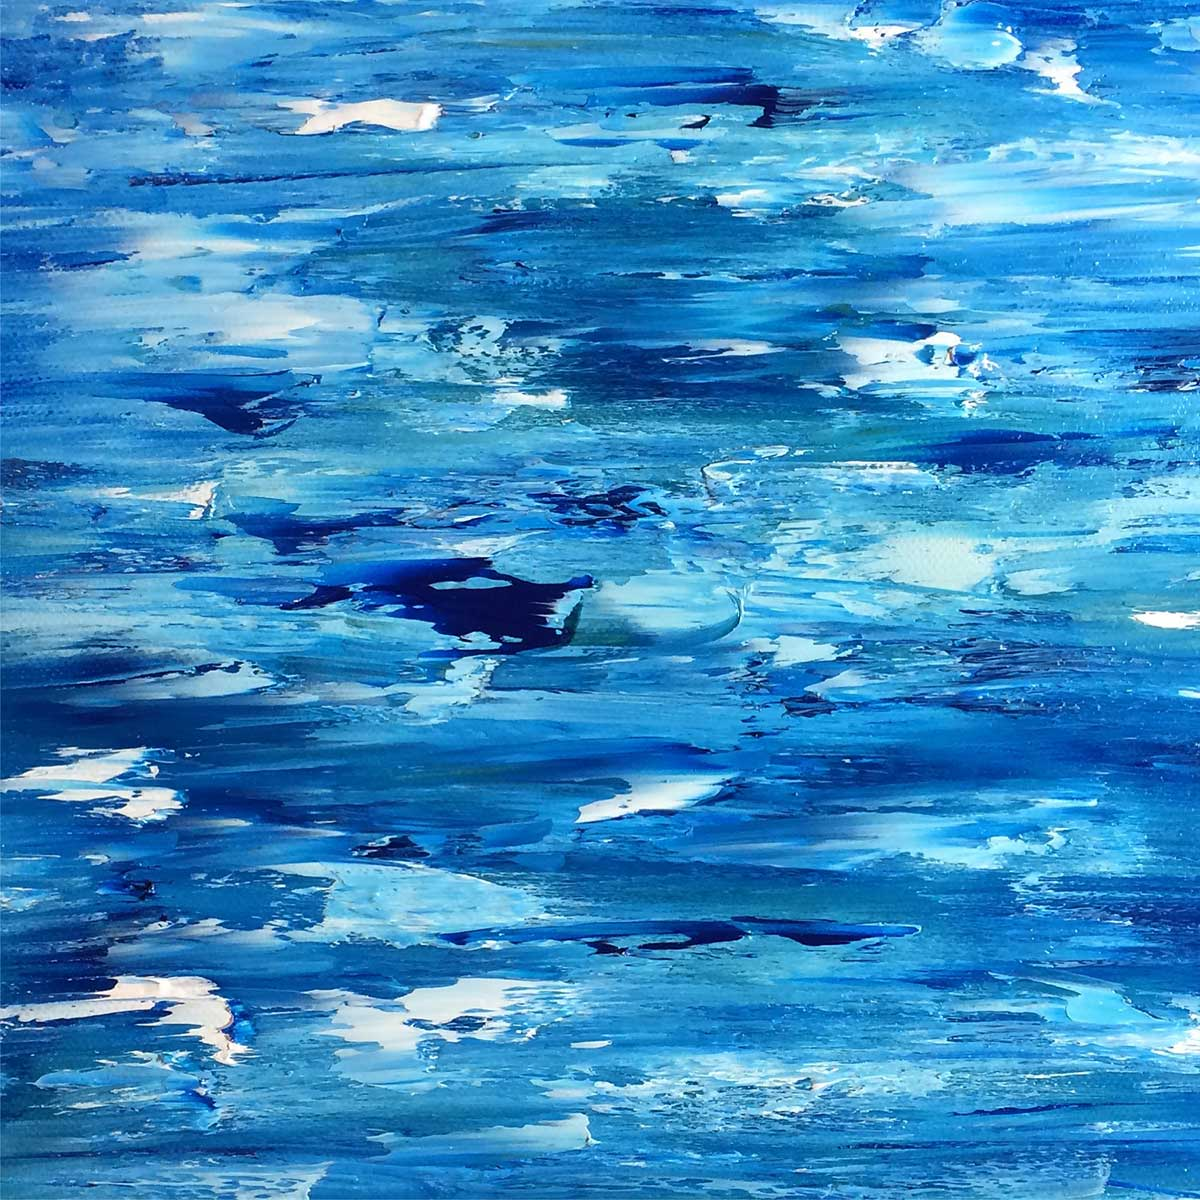 Diverging, Blue Water Ocean Oil Abstract Painting: 30 in 30 Painting Challenge 2018, with Transgender Artist Sophie Lawson